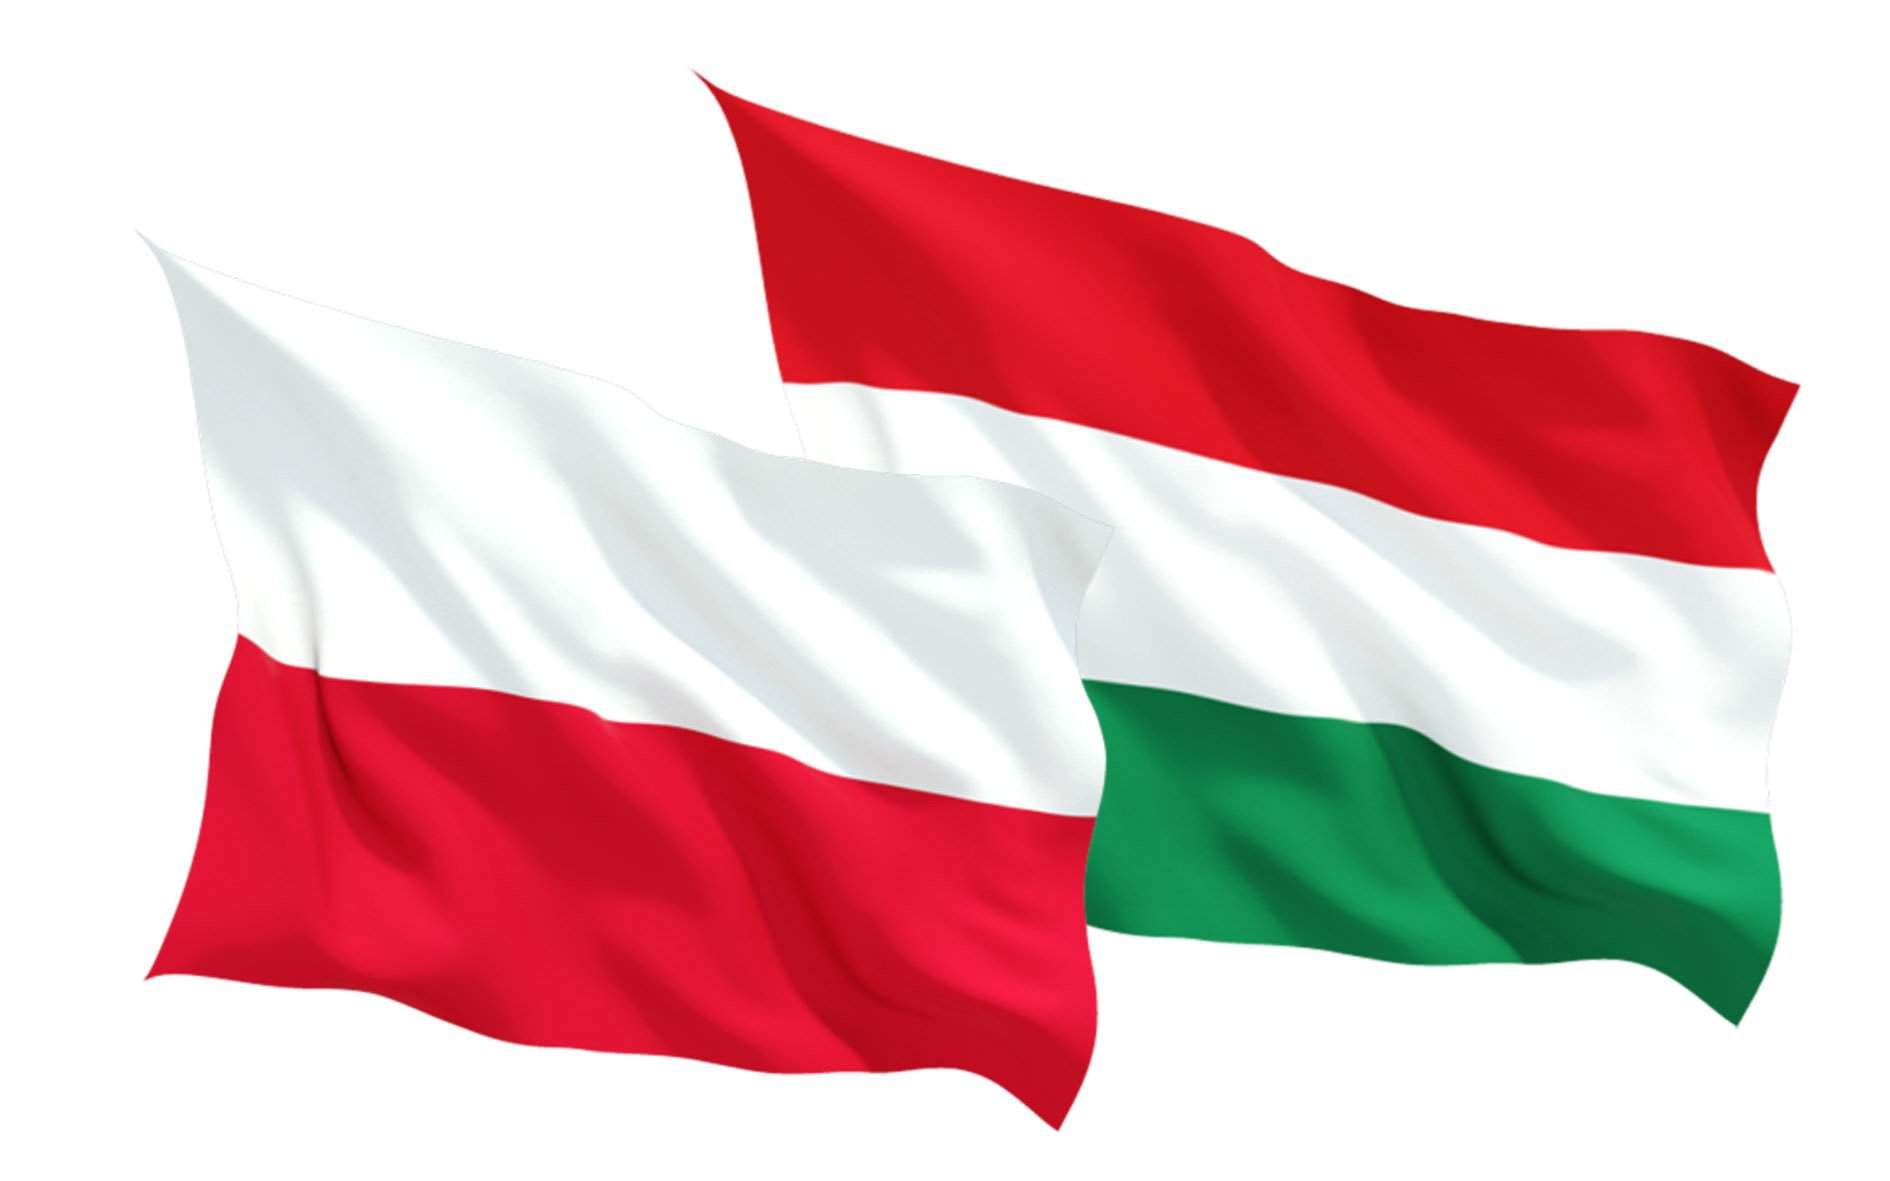 New foundation, cultural festival to seal Hungary-Poland friendship